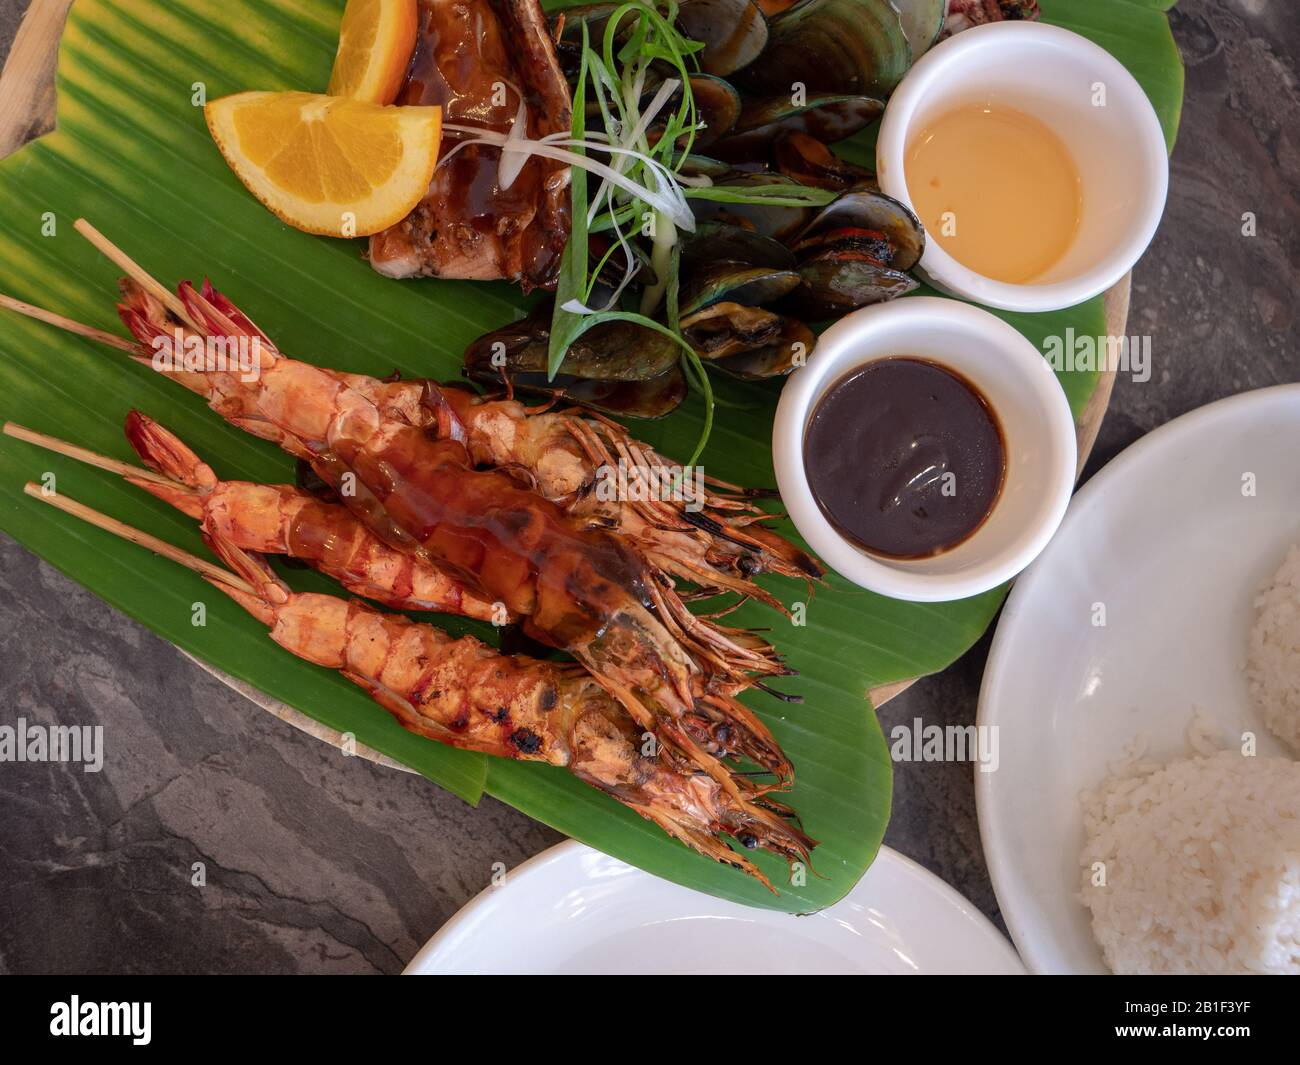 Grilled Seafood Platter With Barbecue Sauce On Banana Leaf Stock Photo Alamy